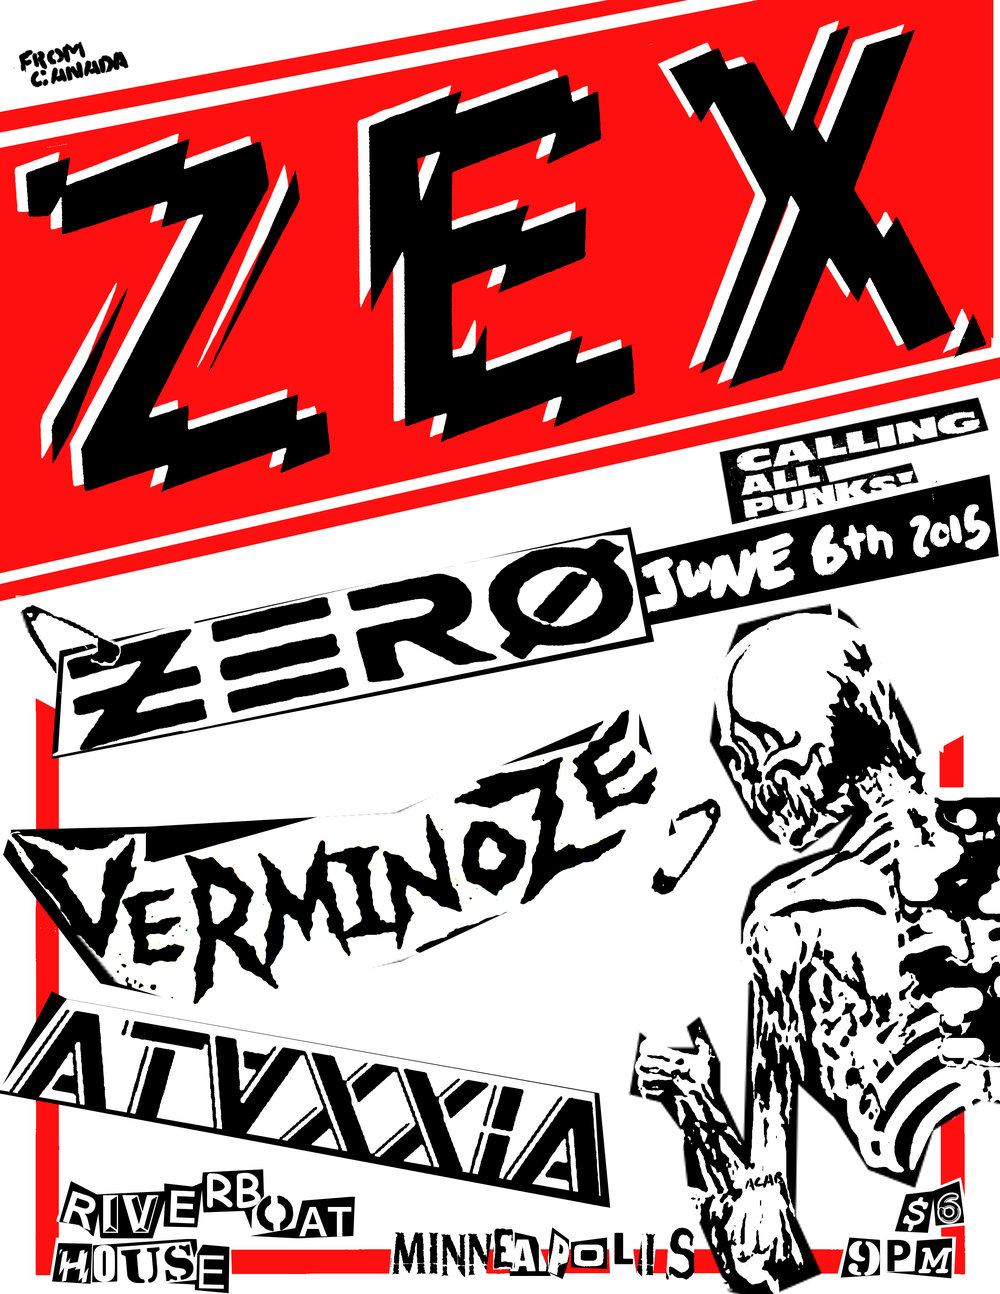 flyer-15.06.06-minneapolis-zex-red.jpg